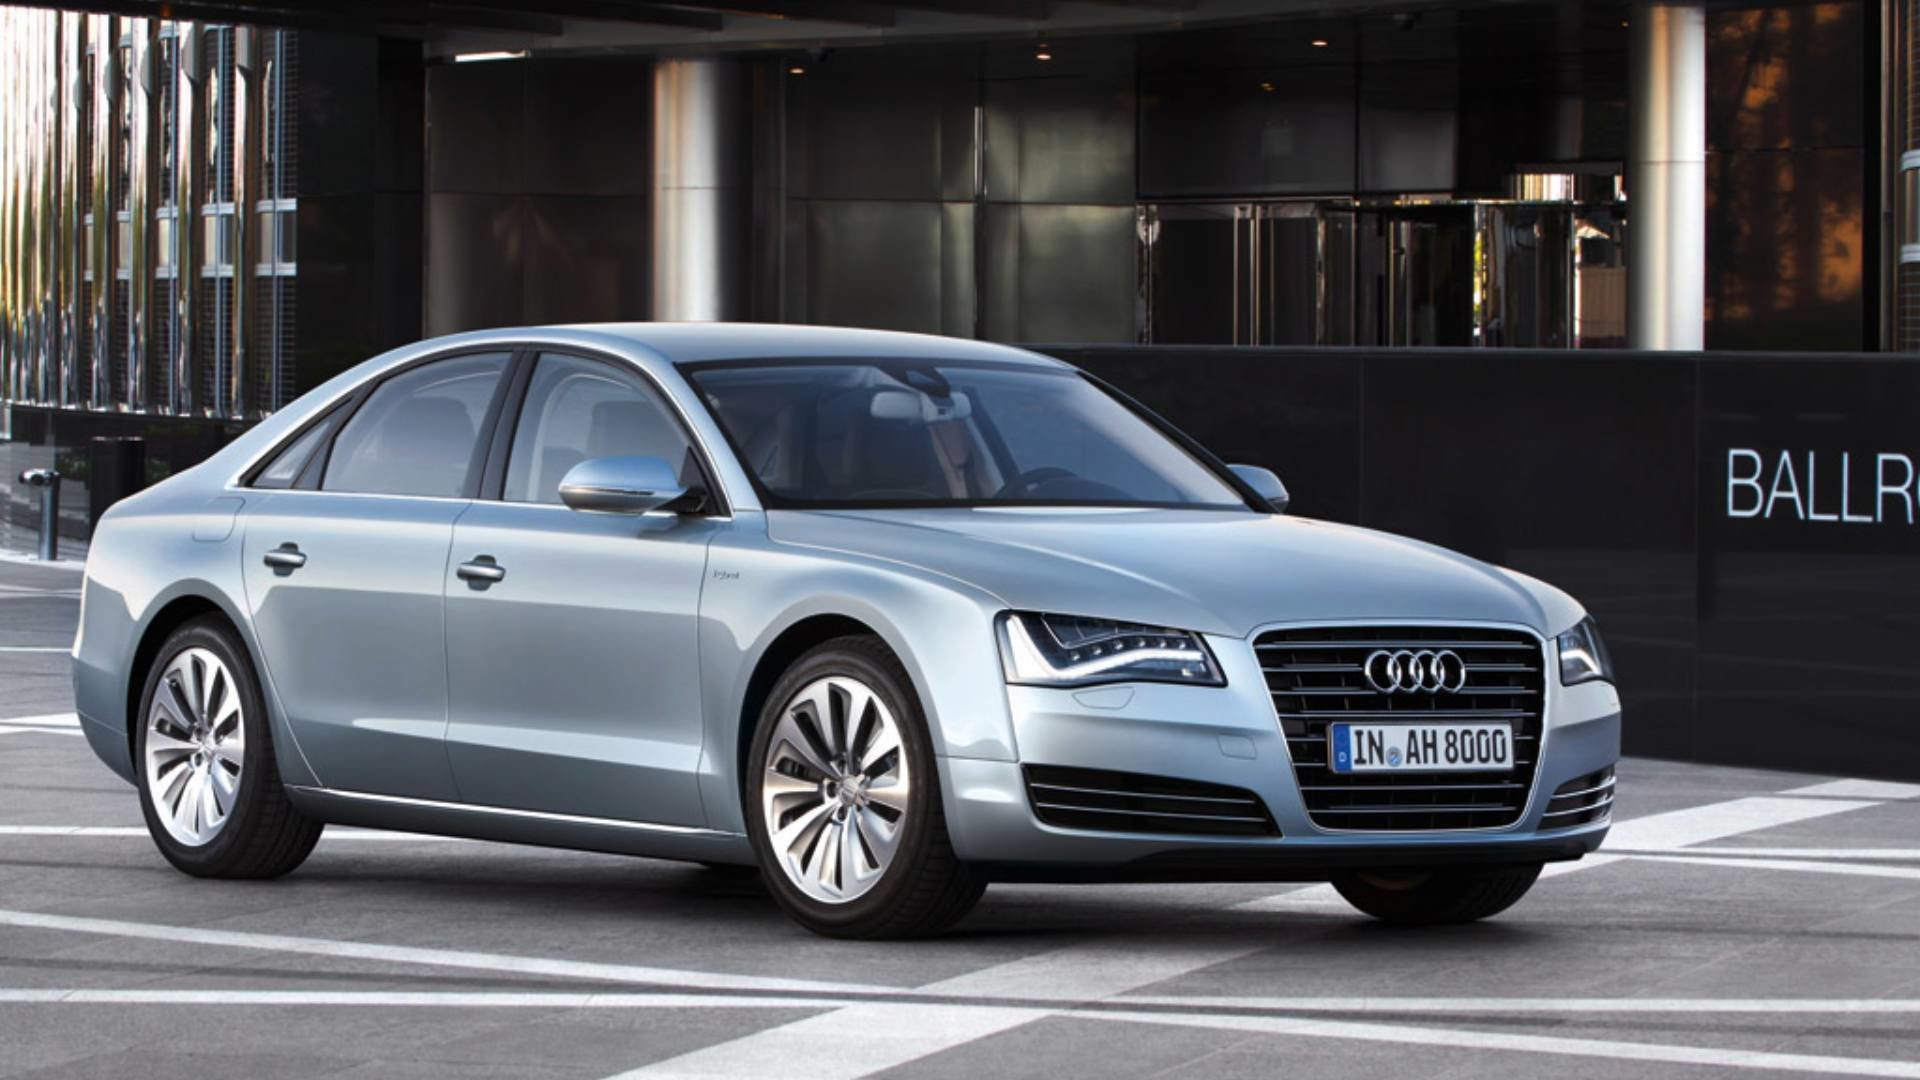 Latest 2012 Audi A8 Hd Wallpapers Car News And Review Free Download